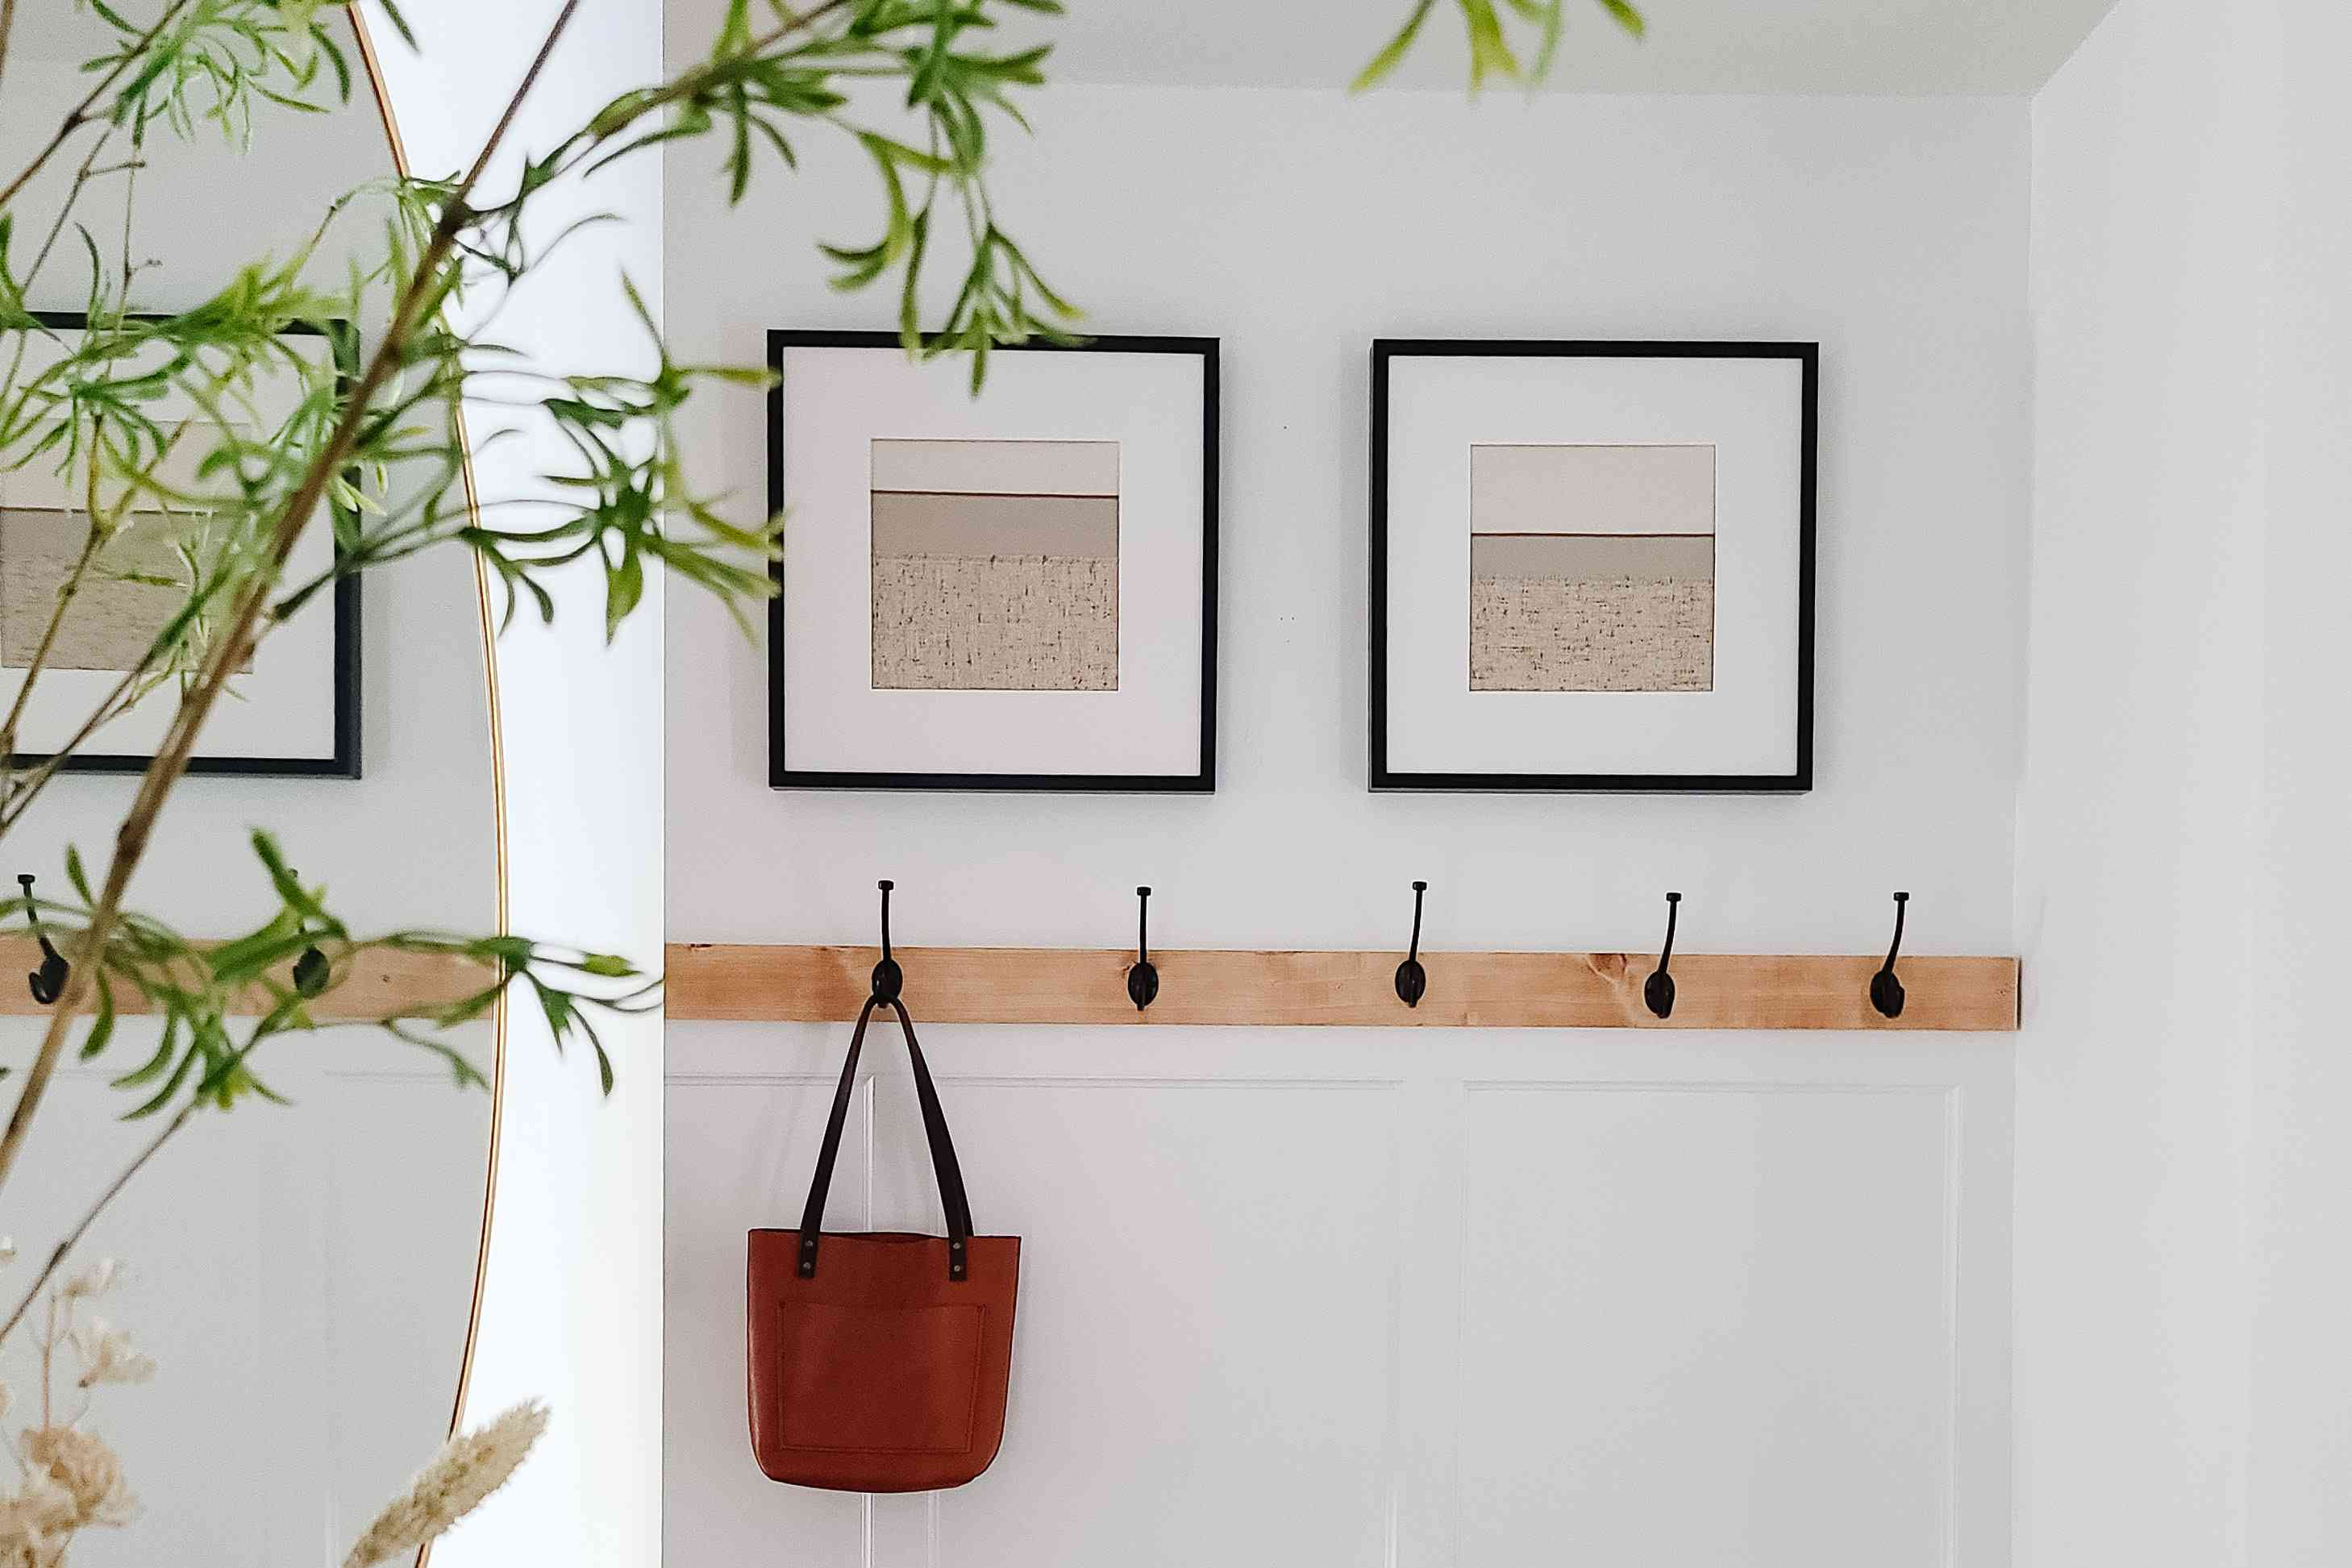 Framed artwork above a simple mounted coat rack.